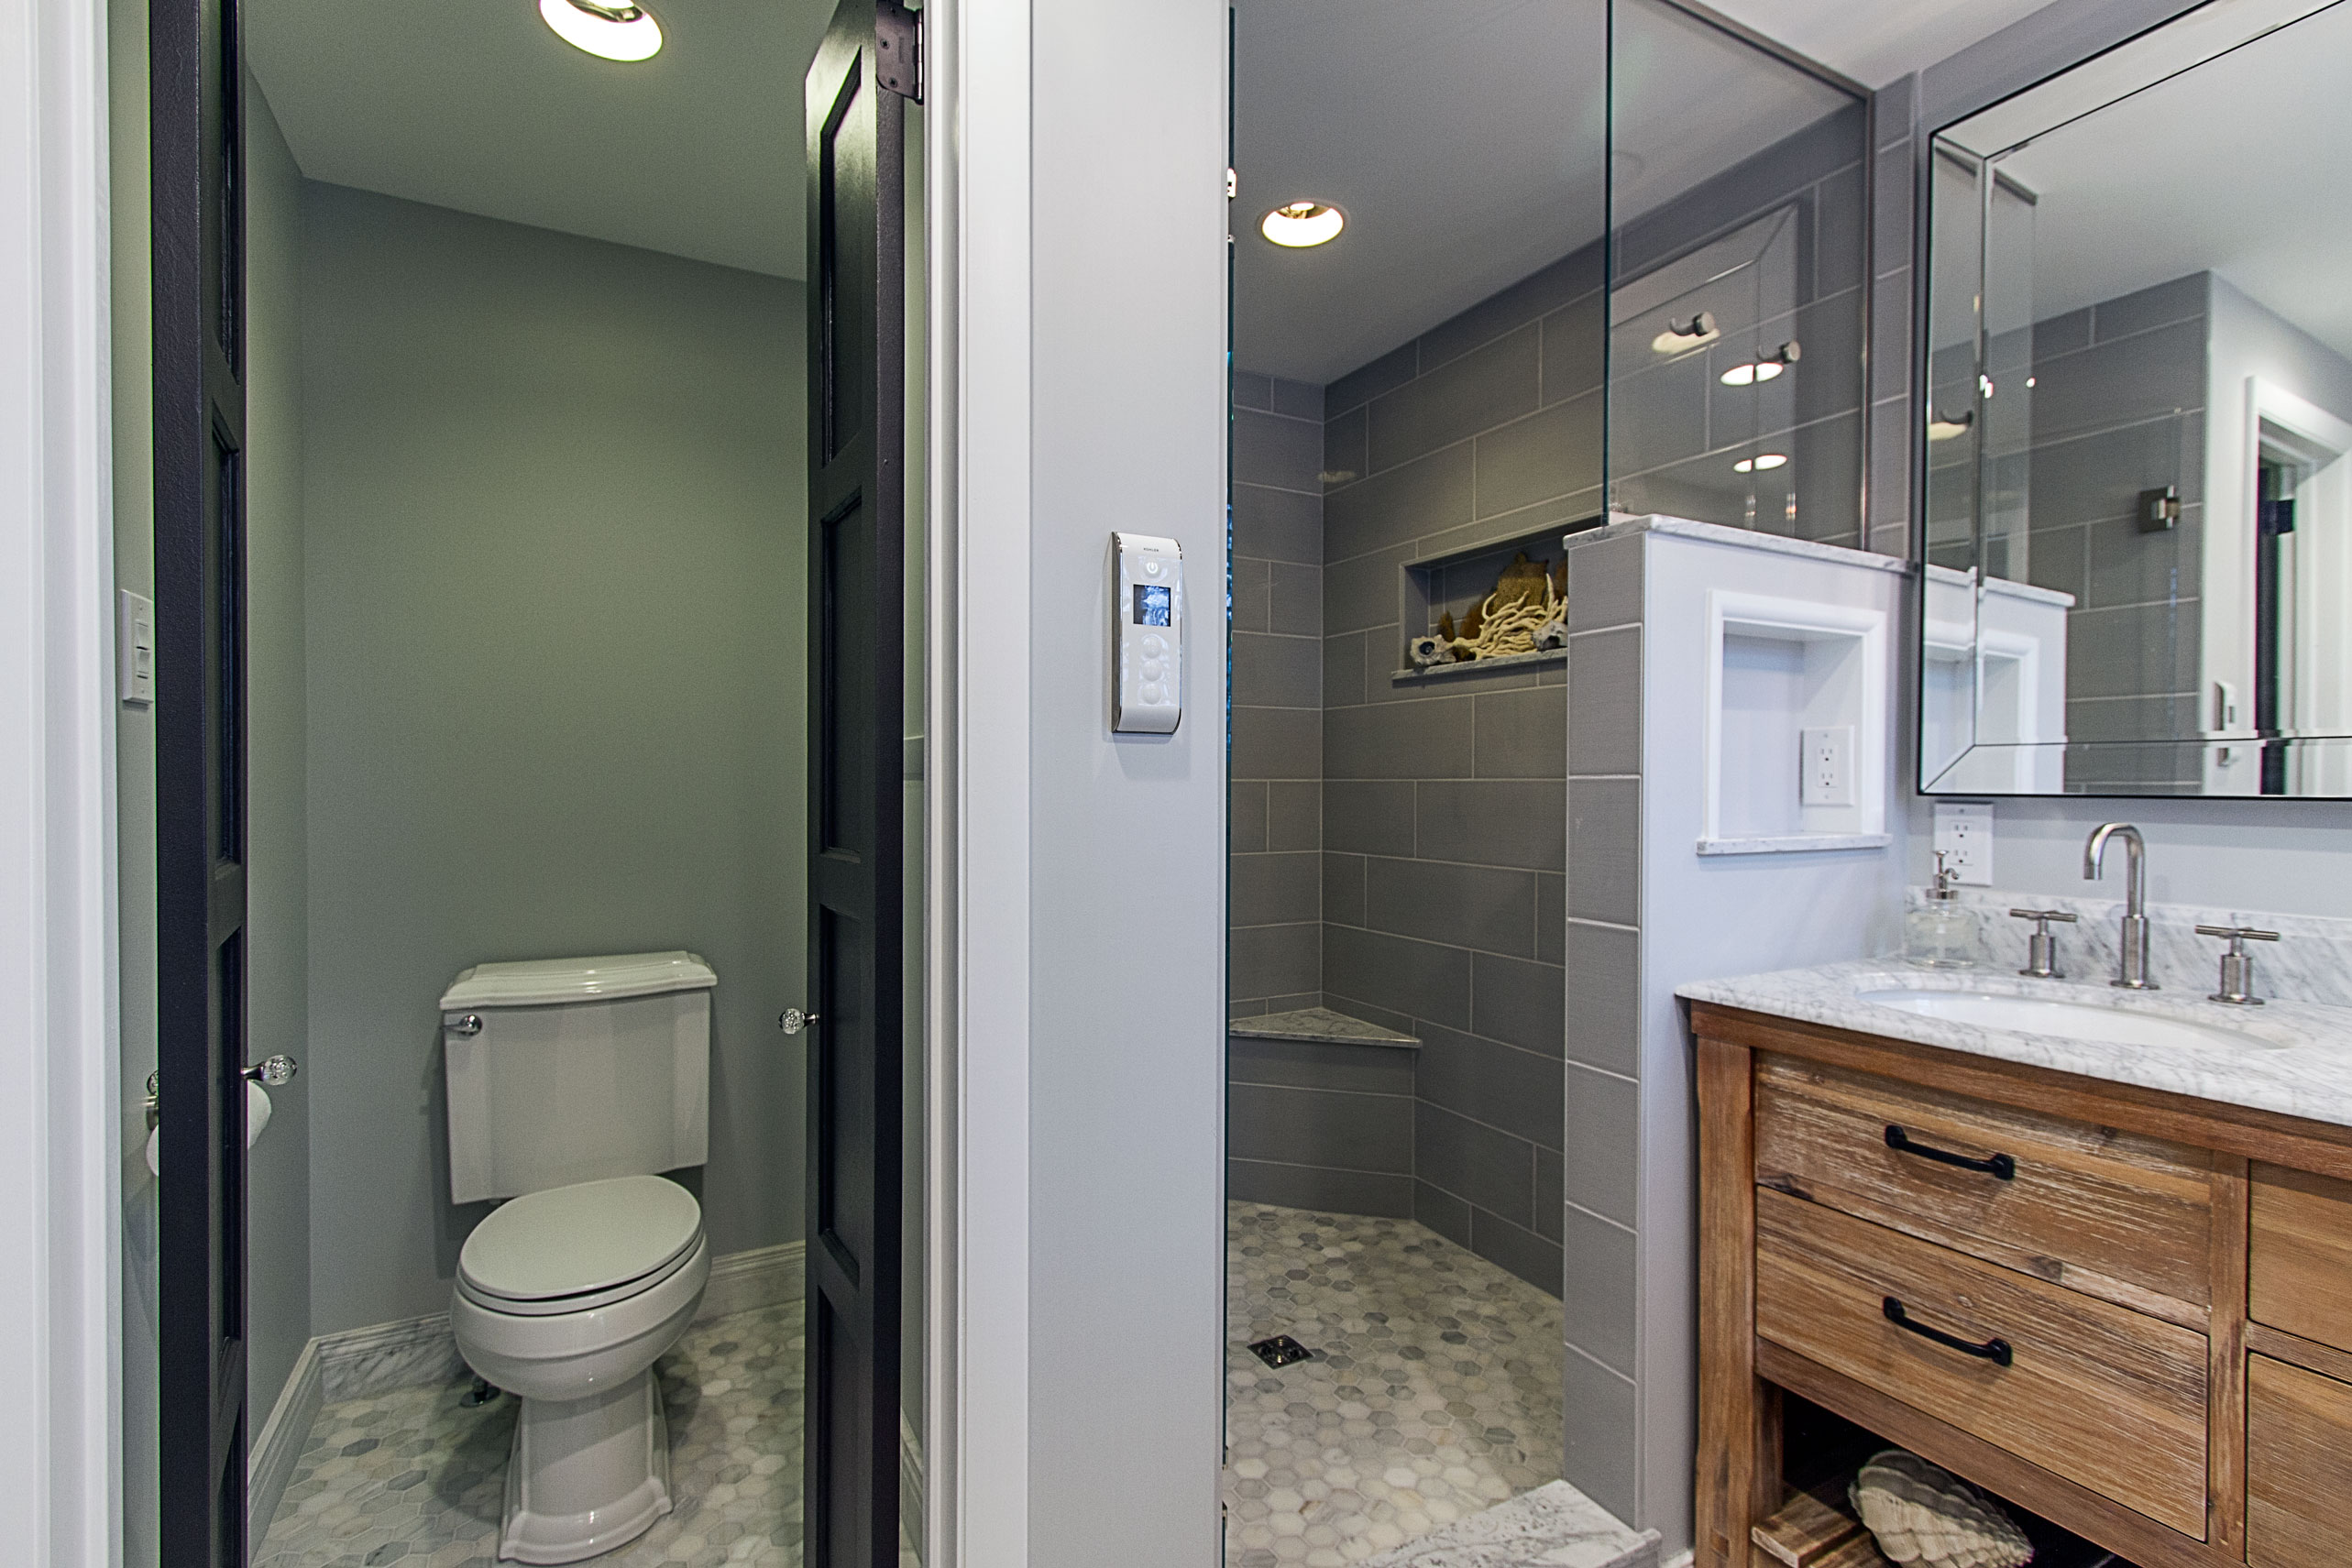 Bathroom Fixtures Vernon vernon master suite | pittsburgh remodeling company